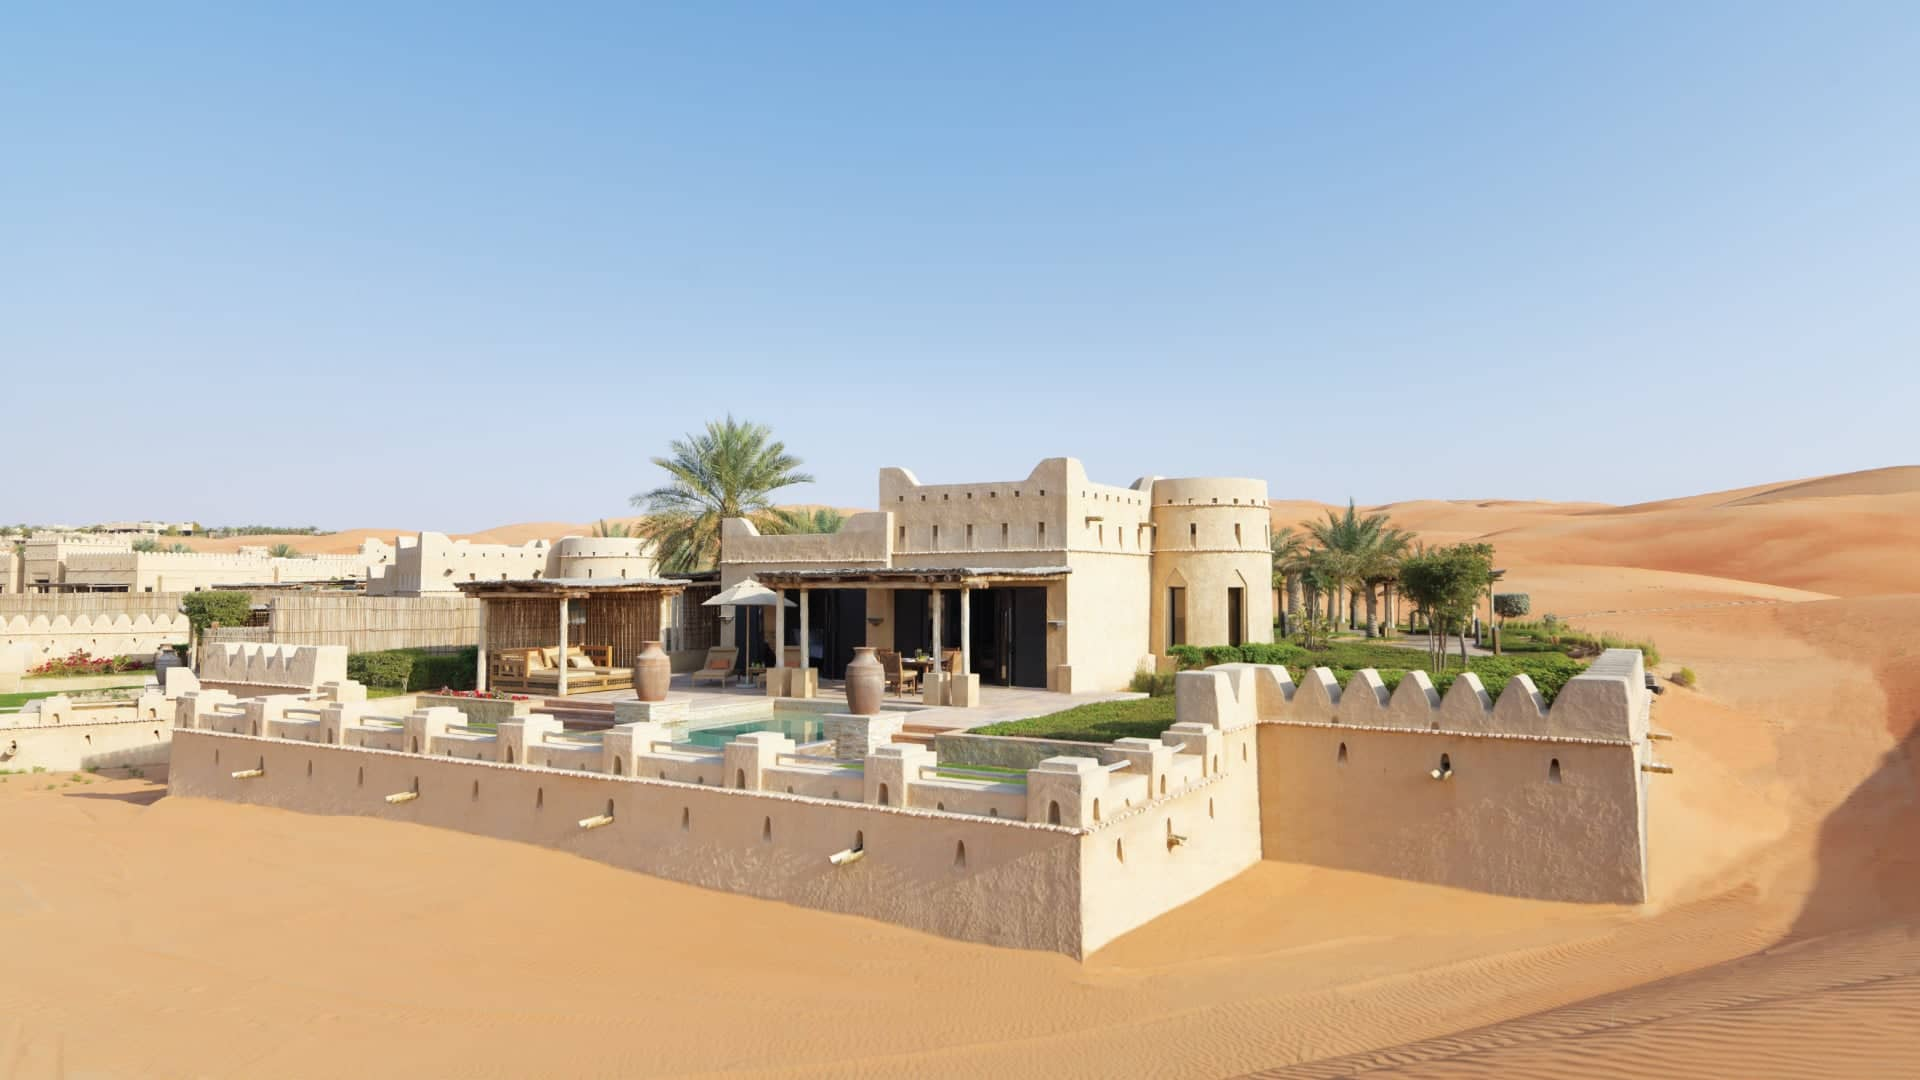 https://assets.anantara.com/image/upload/q_auto,f_auto/media/minor/anantara/images/royal-pavilion-villas-by-qasr-al-sarab/the-resort/desktop-banner/royal_pavilion_by_qasr_al_sarab_desktop_banner_1920x1080.jpg